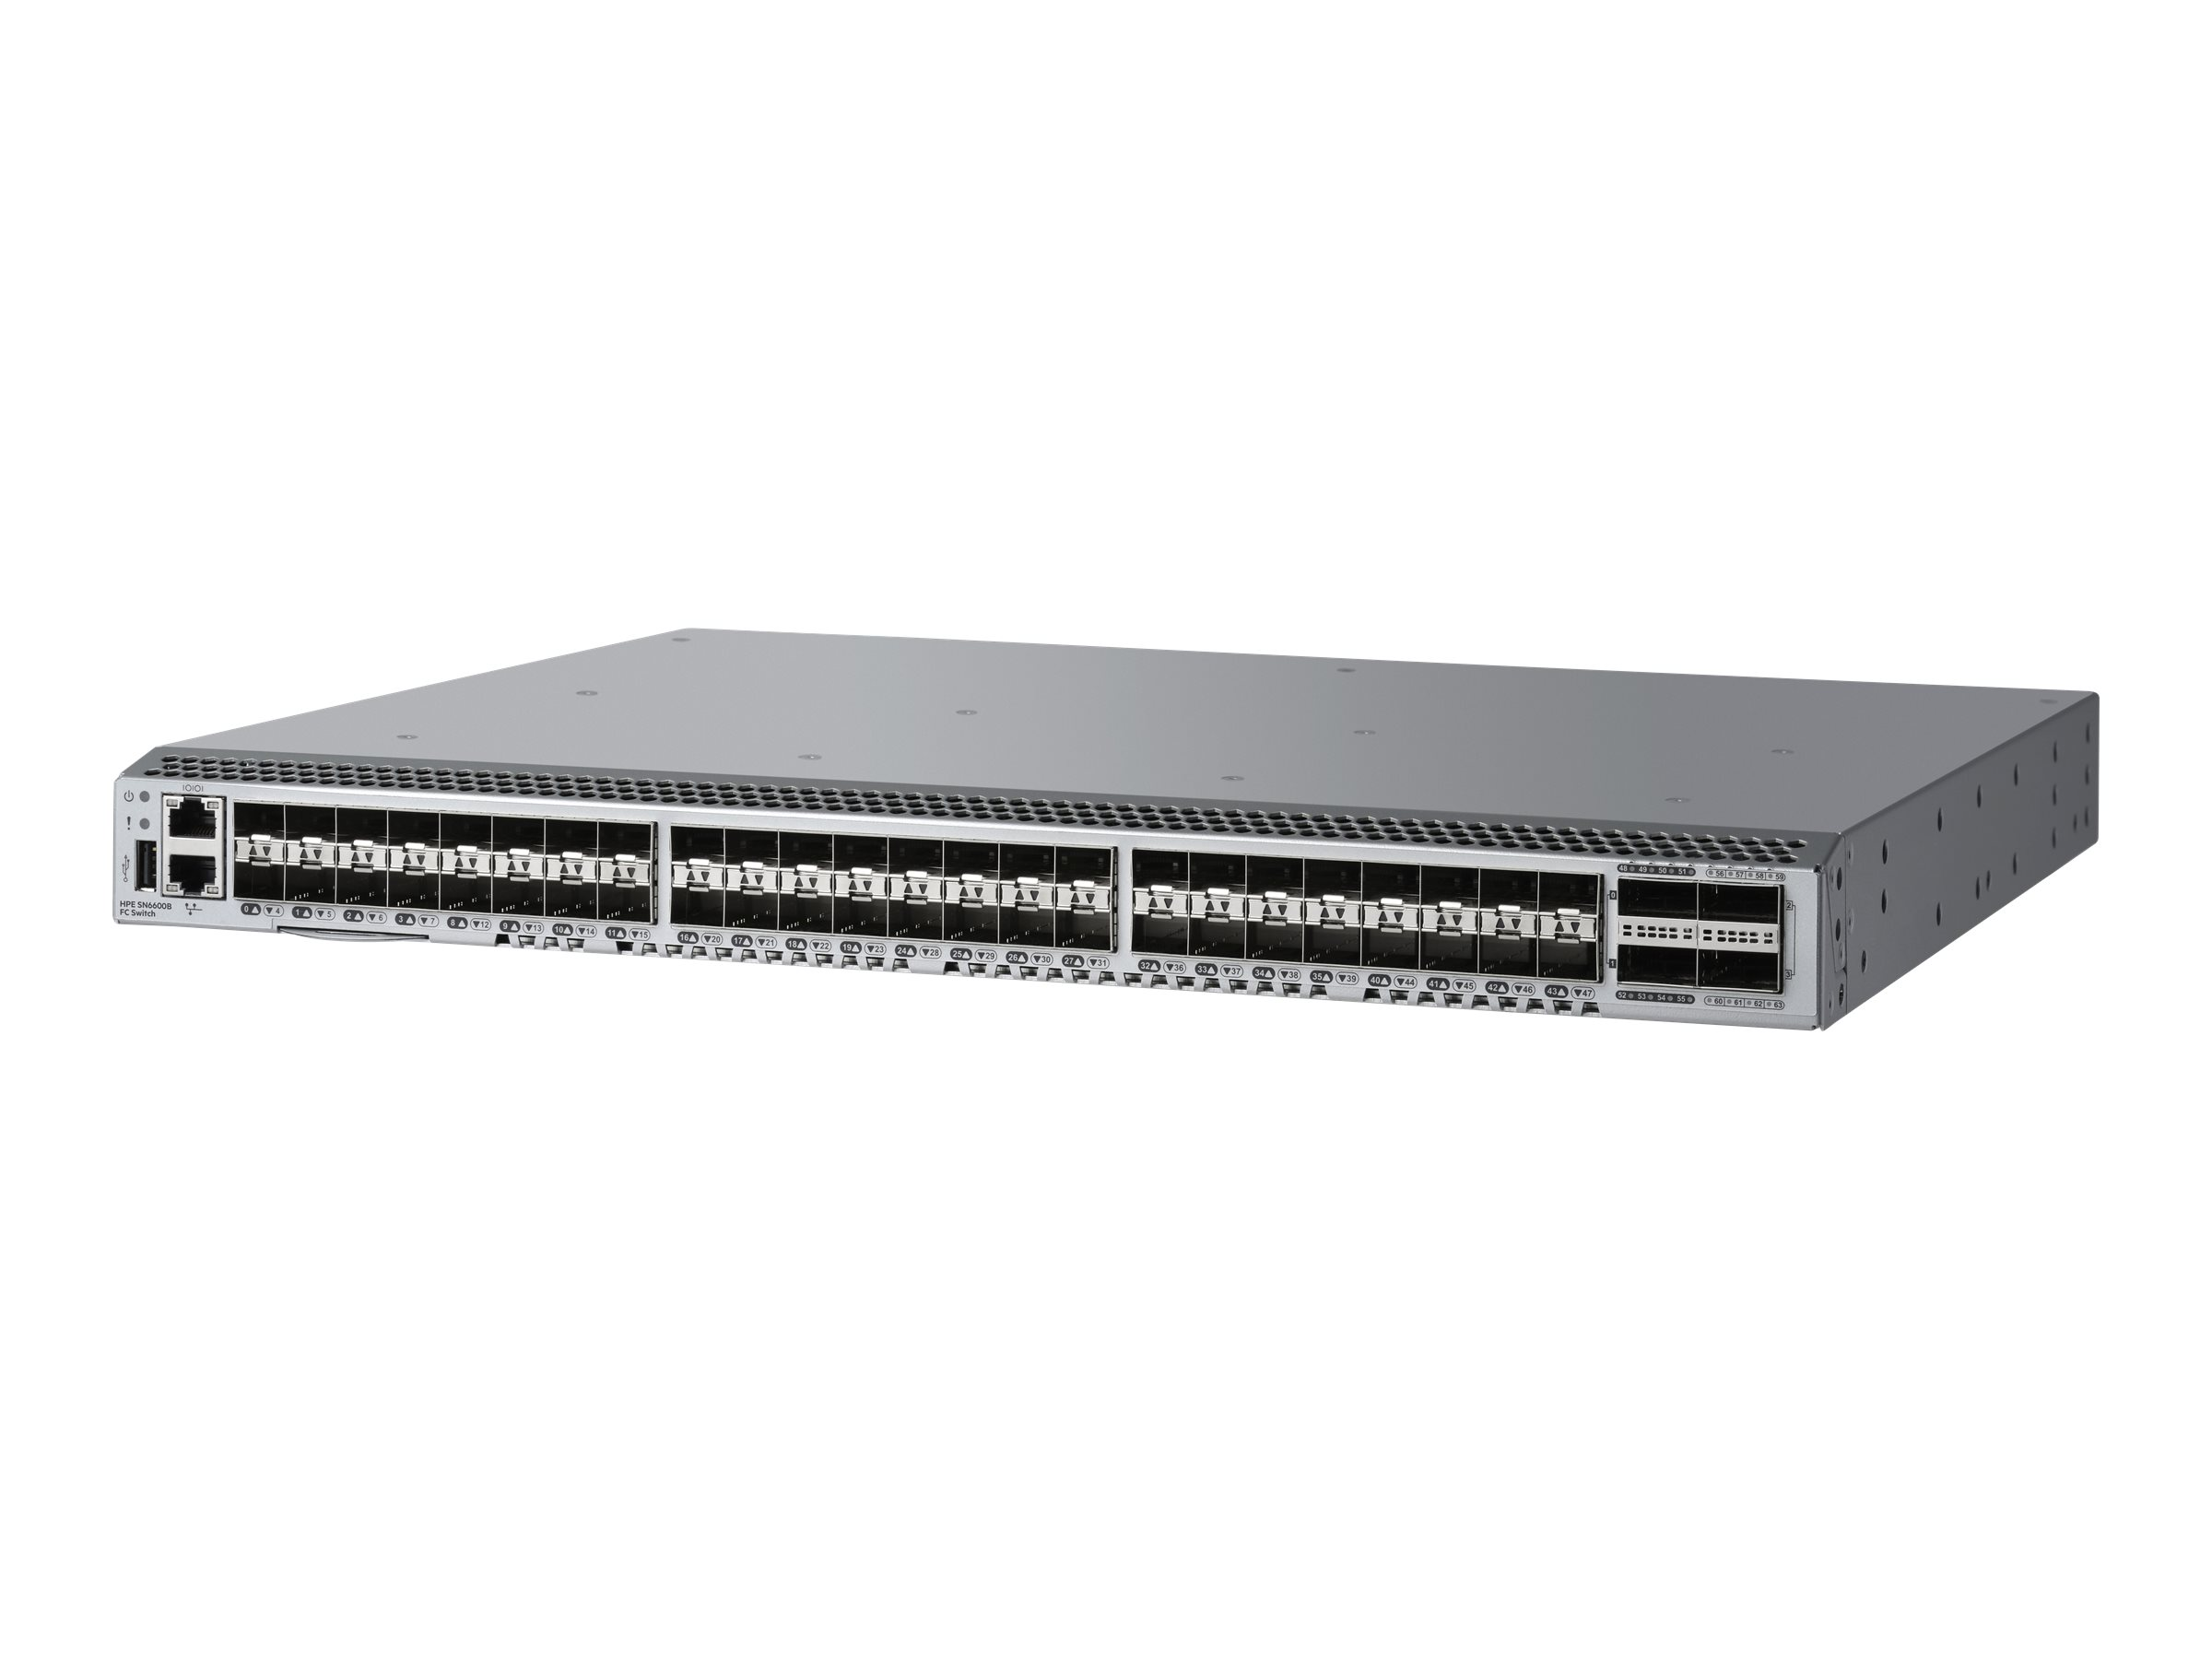 HPE StoreFabric SN6600B 32Gb 48/24 Power Pack+ - Switch - verwaltet - 24 x SFP+ + 4 x QSFP+ - an Rack montierbar - mit 24x 32 Gb